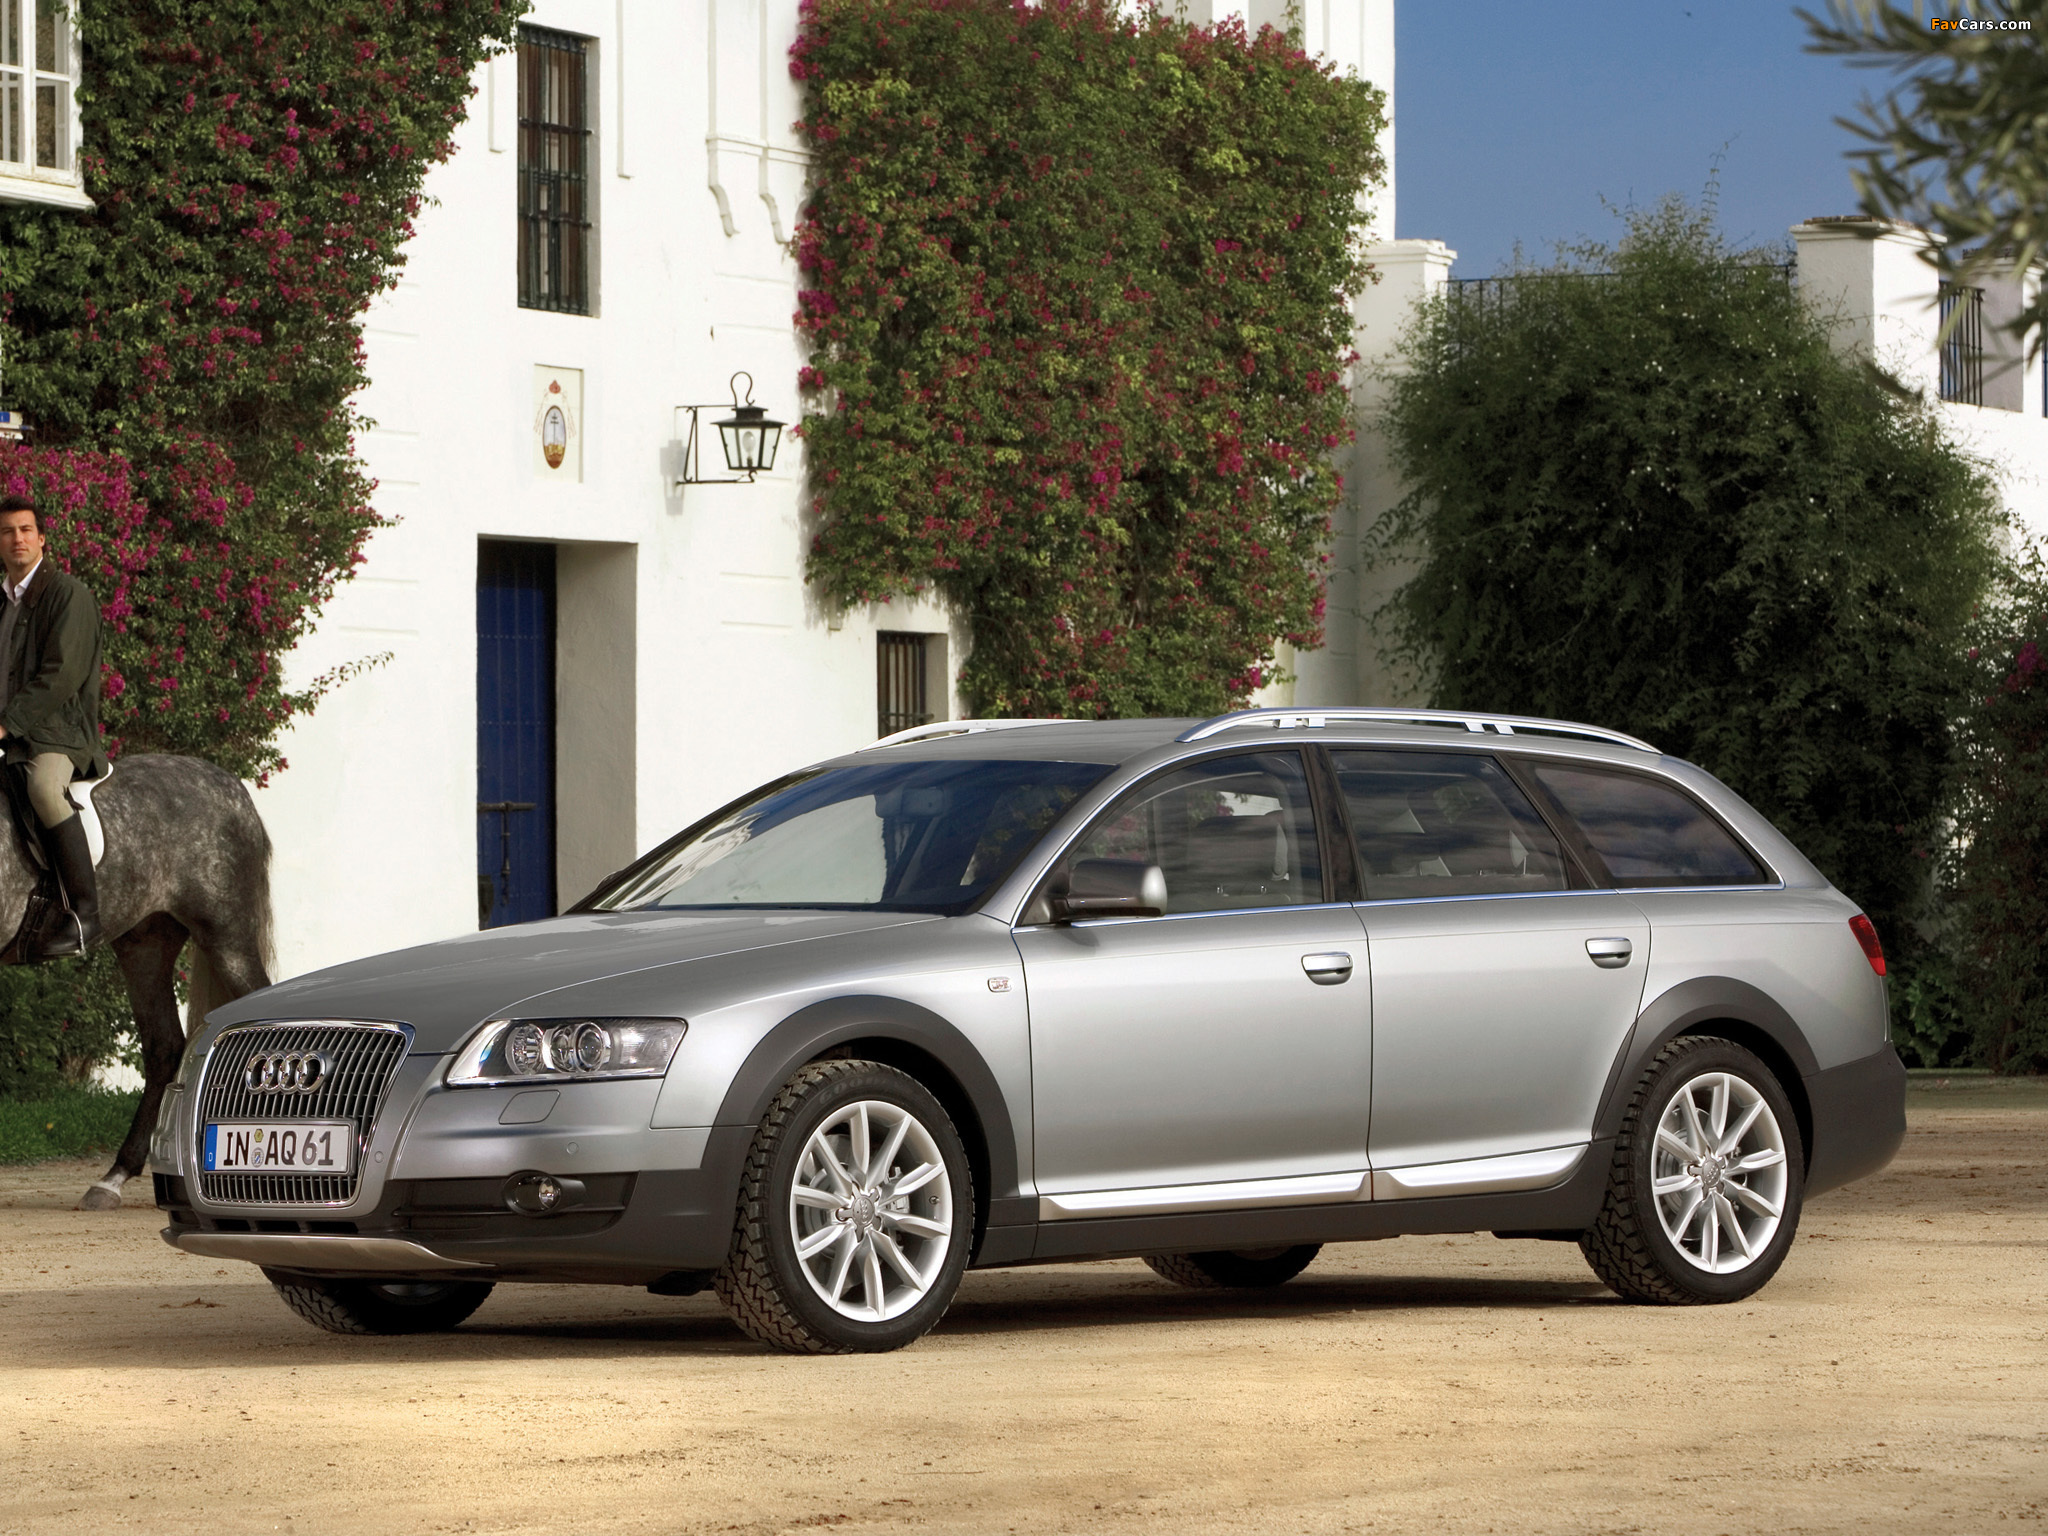 Audi A6 Allroad 4.2 quattro (4F,C6) 2006–08 wallpapers (2048x1536)